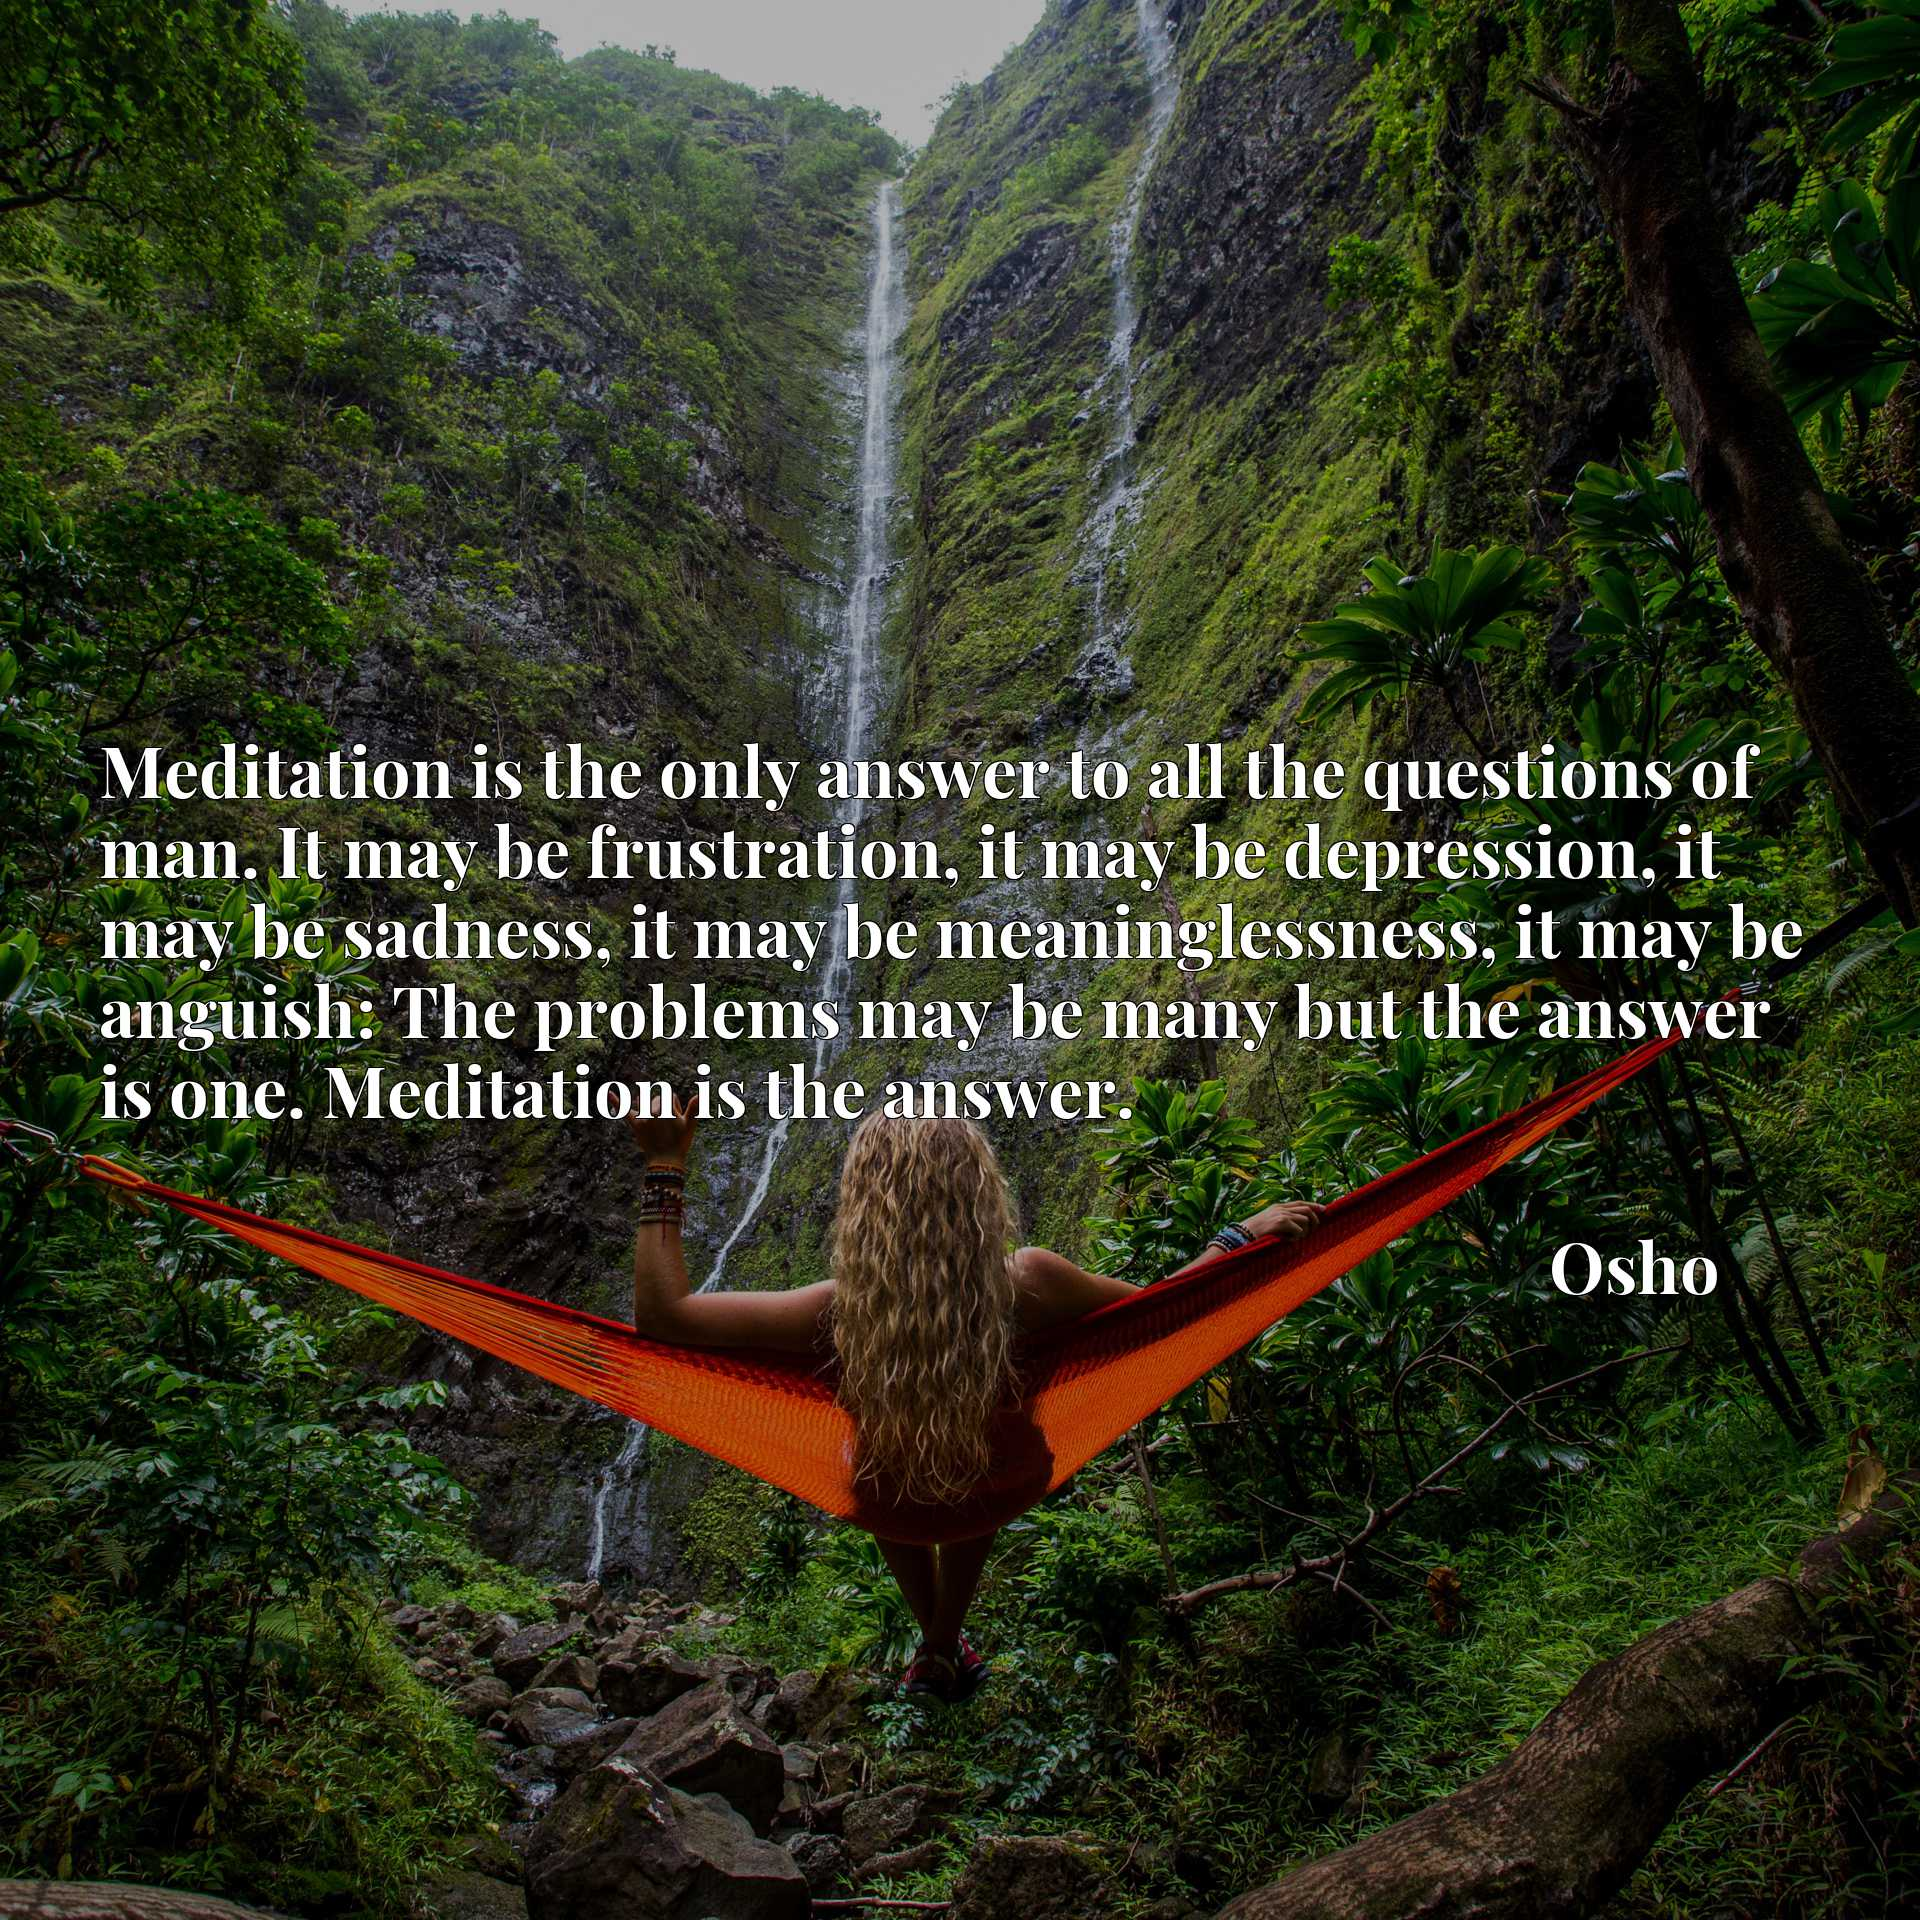 Meditation is the only answer to all the questions of man. It may be frustration, it may be depression, it may be sadness, it may be meaninglessness, it may be anguish: The problems may be many but the answer is one. Meditation is the answer.